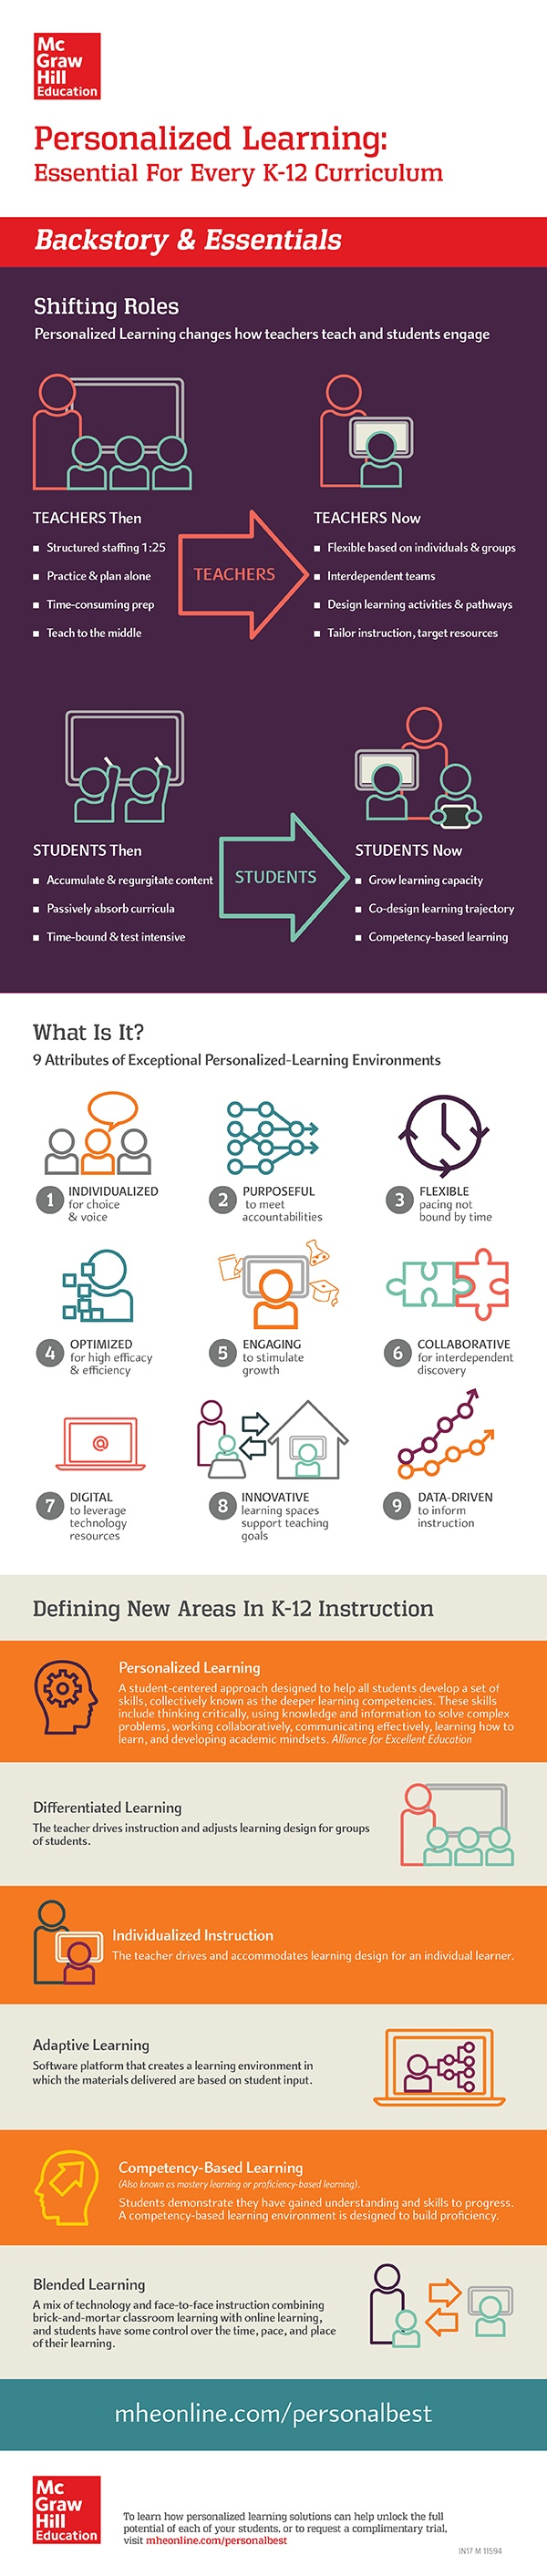 Personalized Learning: Backstory & Essentials Infographic